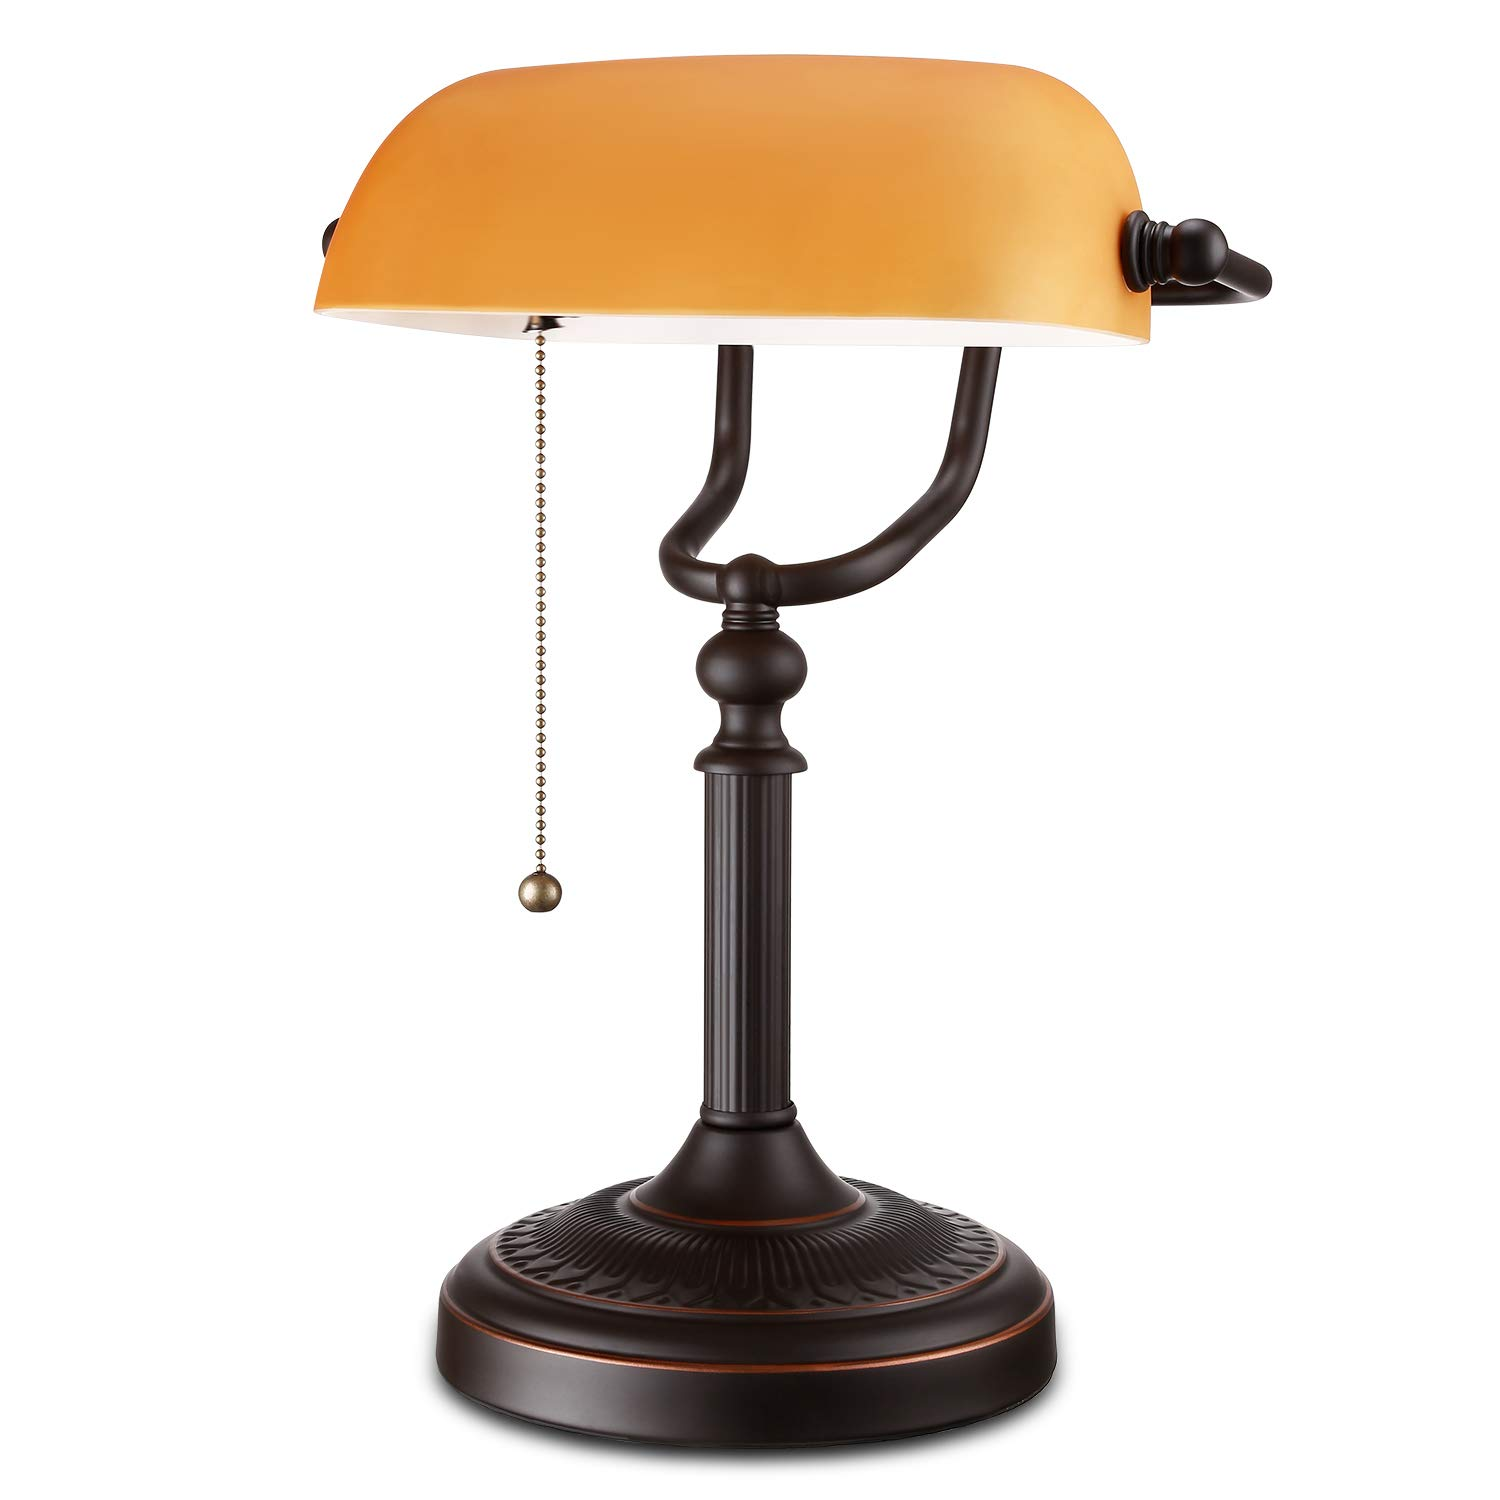 ESCENA Traditional Banker's Lamp, Antique Style Matte Amber Glass Desk Lighting Fixture, Oil Rubbed Bronze Base Piano Lamp, Metal Beaded Pull Chain Switch Attached